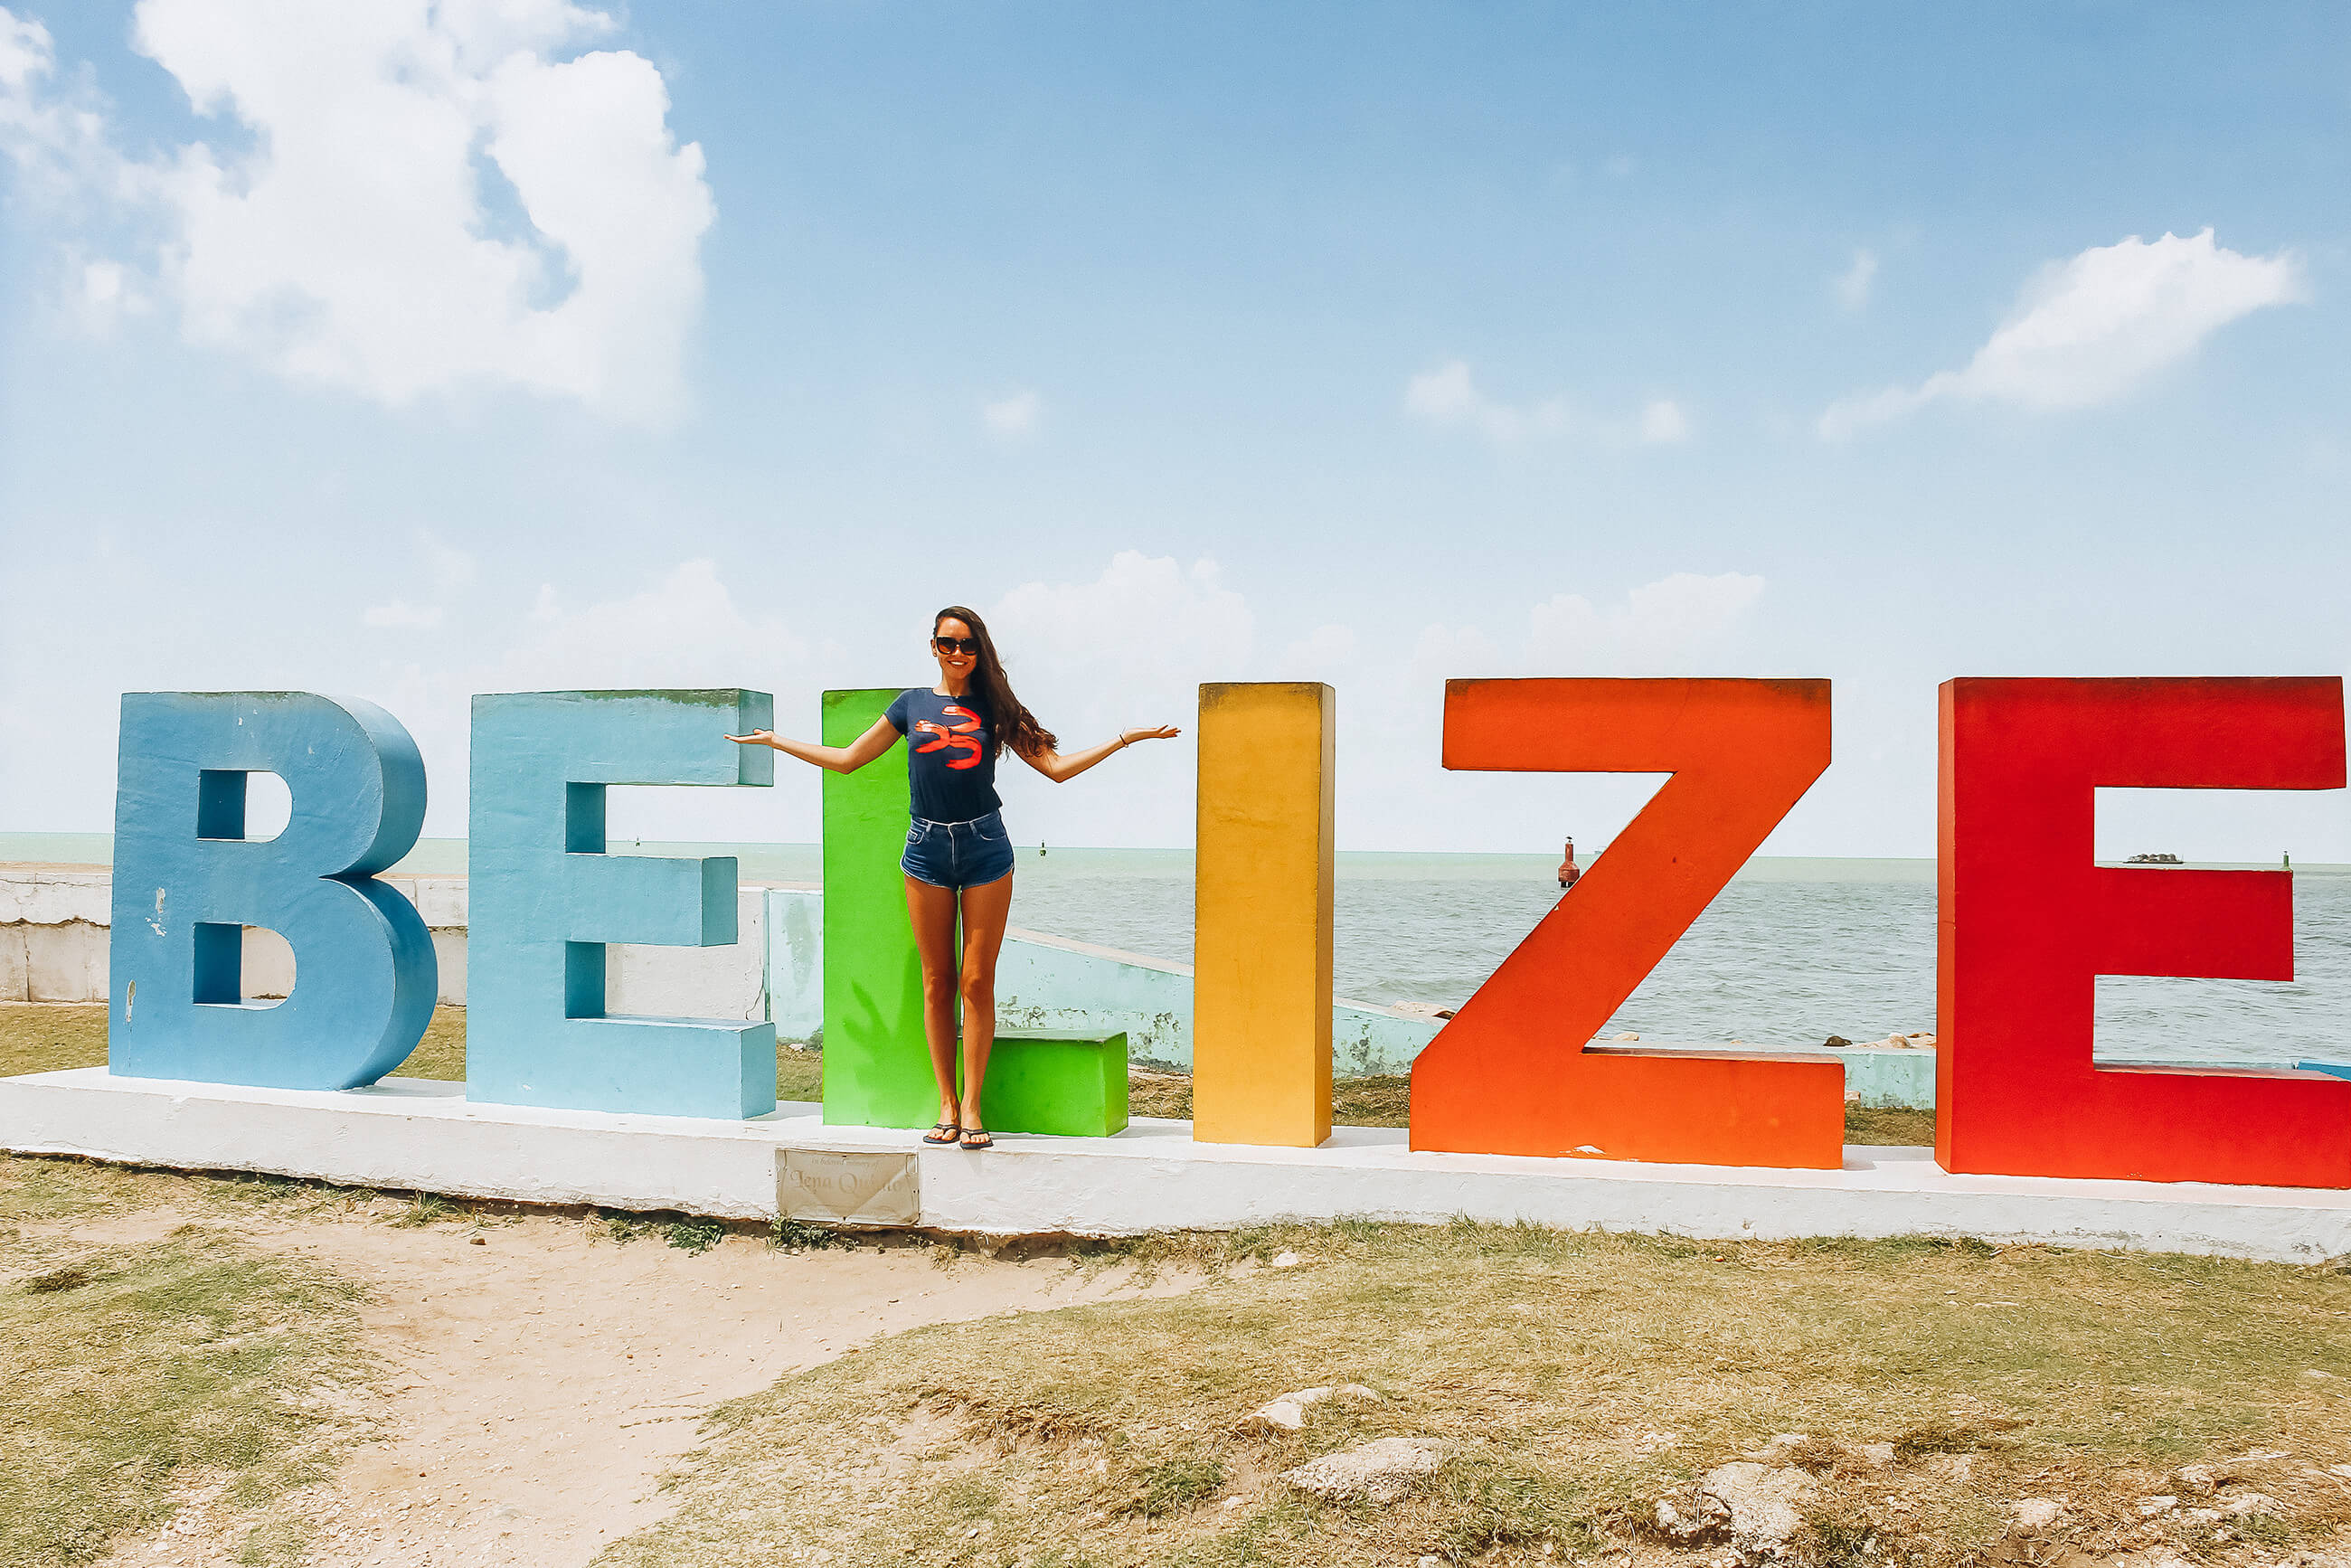 https://bubo.sk/uploads/galleries/7388/alena_spisakova_belize.jpg